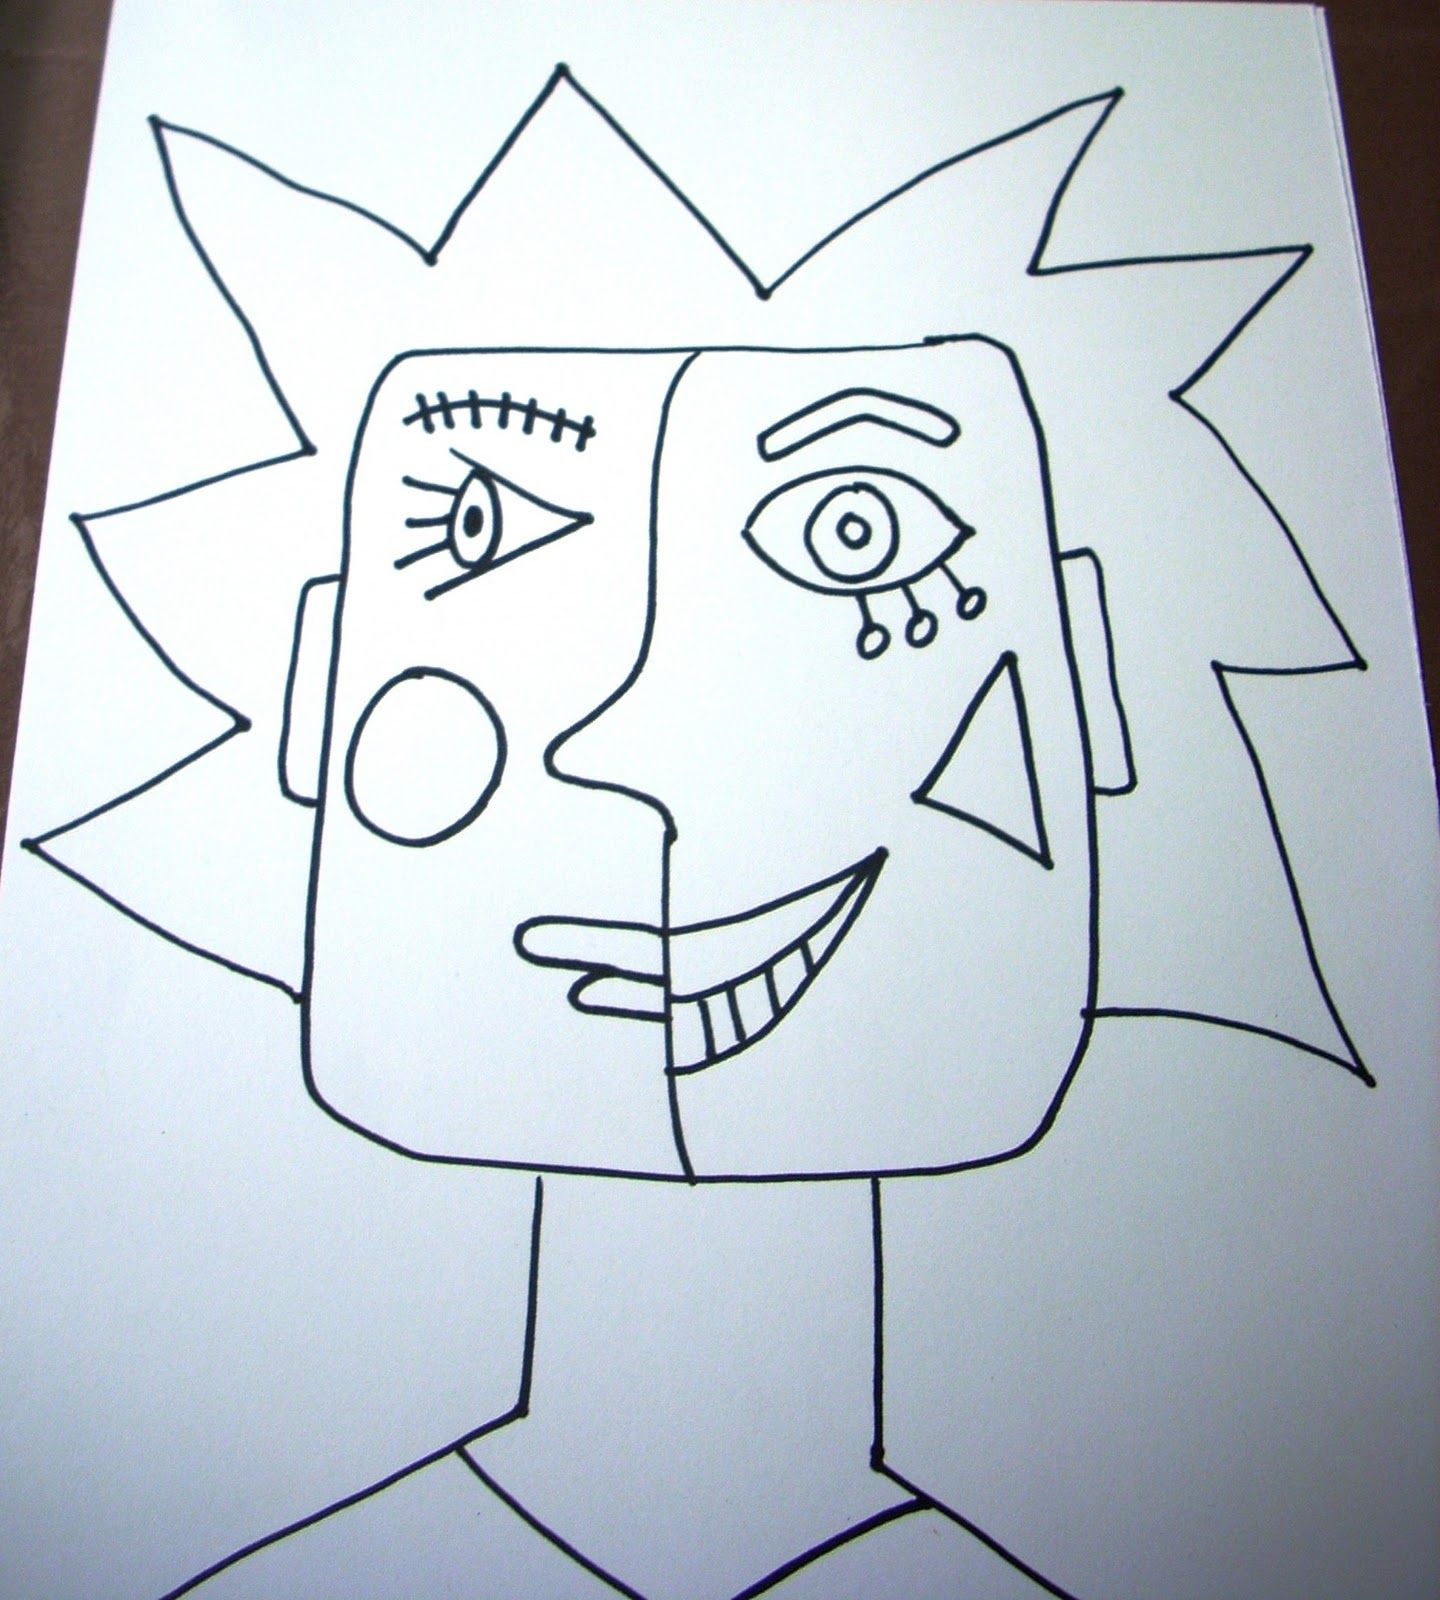 Pablo Picasso Cubism For Kids